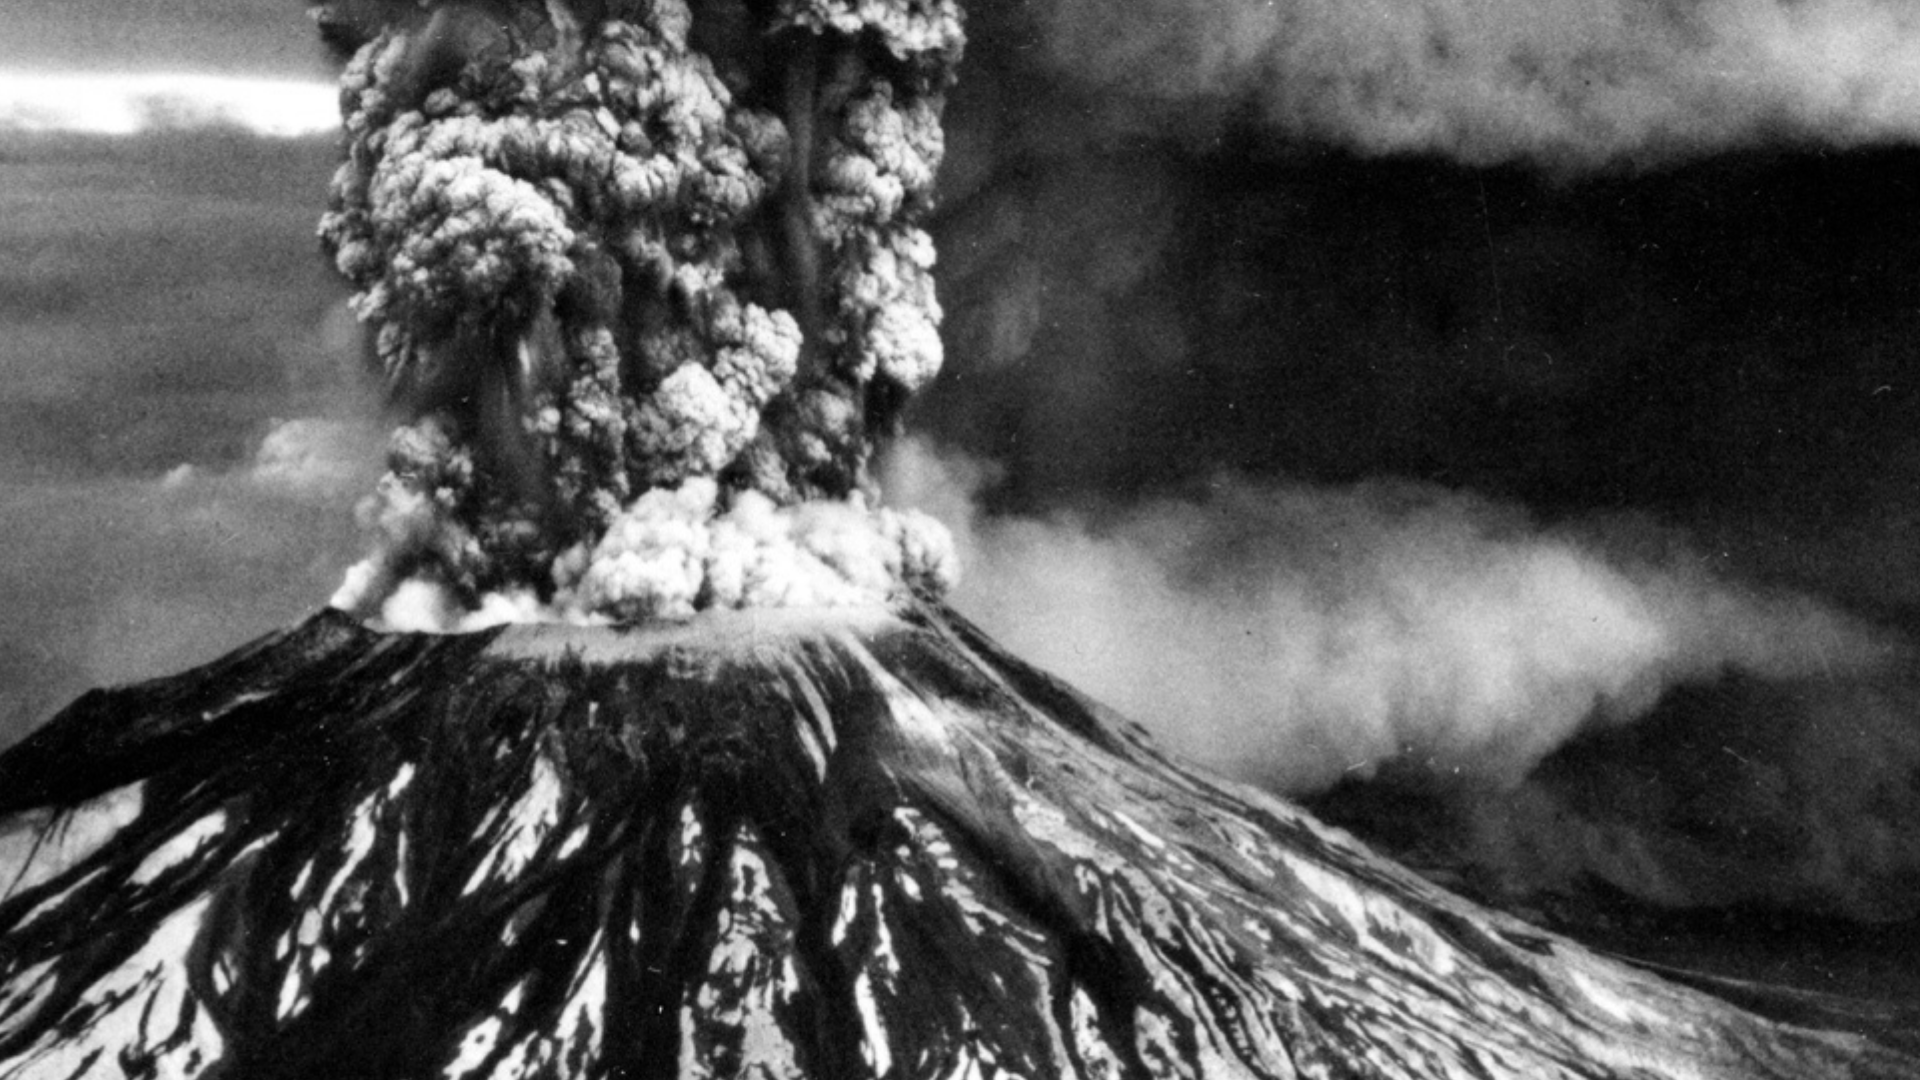 Mount St Helens Erupting in 1980. Photo credit: USGS